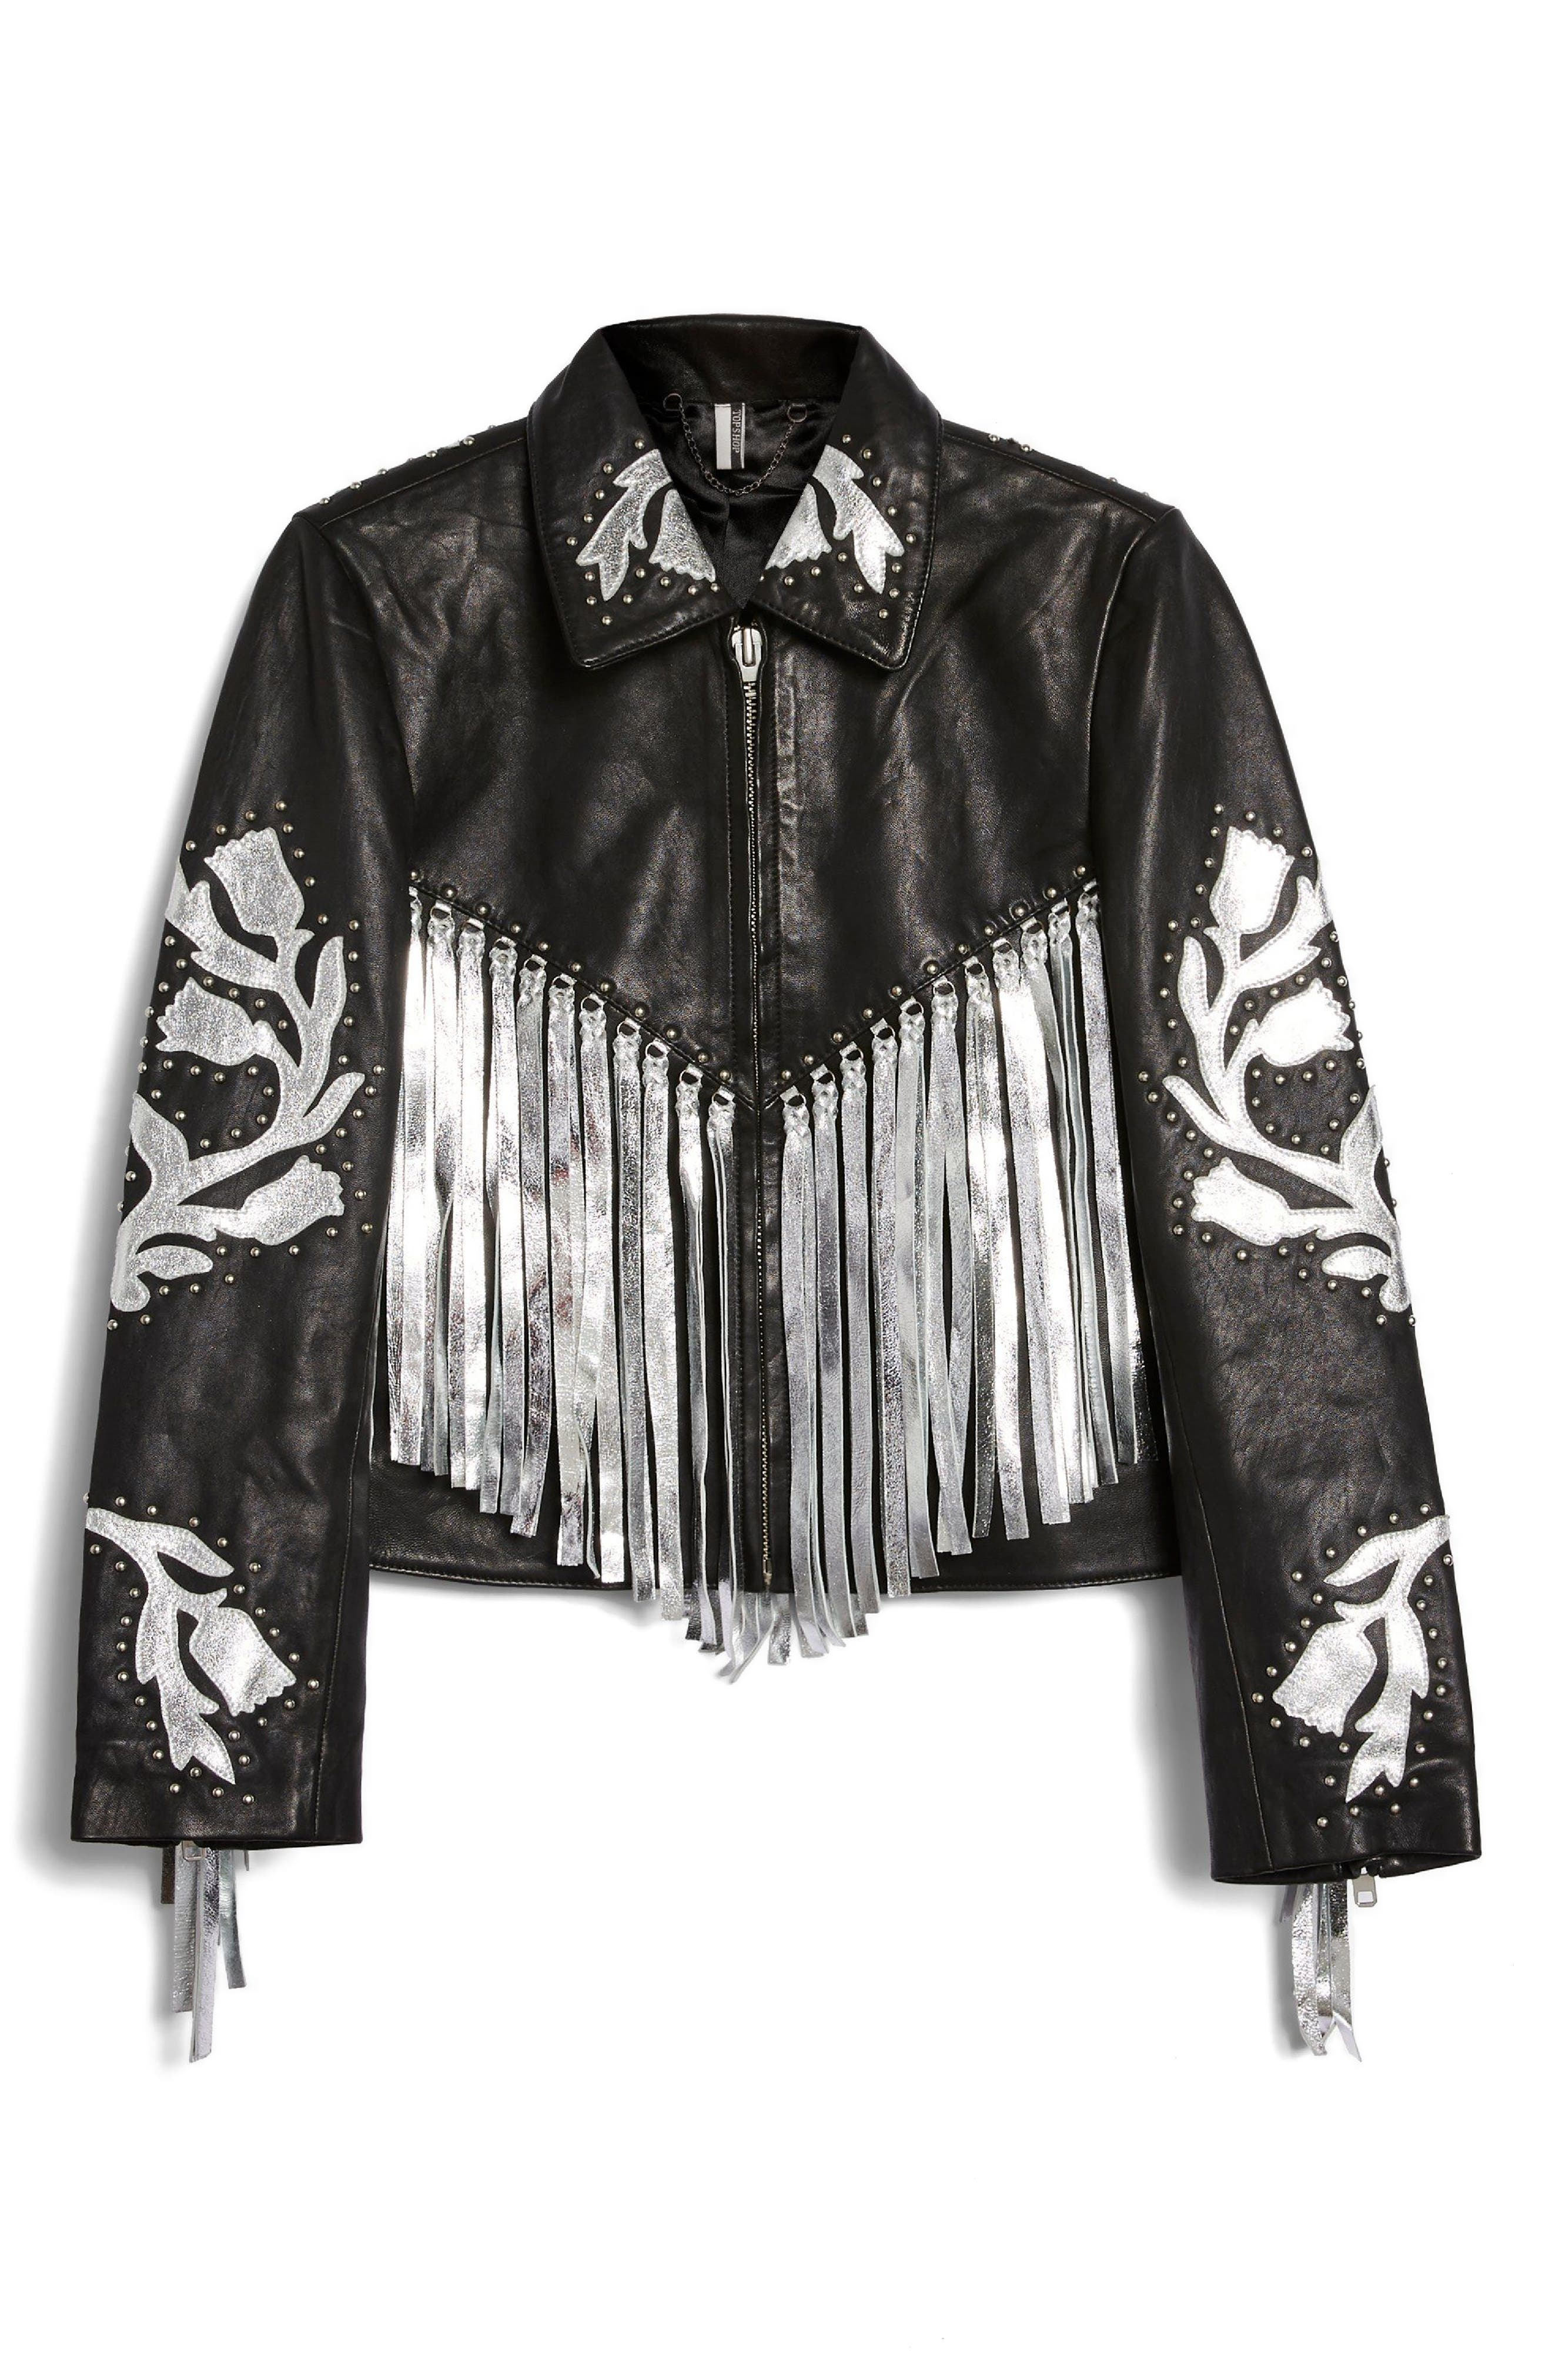 Austin Floral Silver Fringed Leather Jacket,                             Alternate thumbnail 4, color,                             001